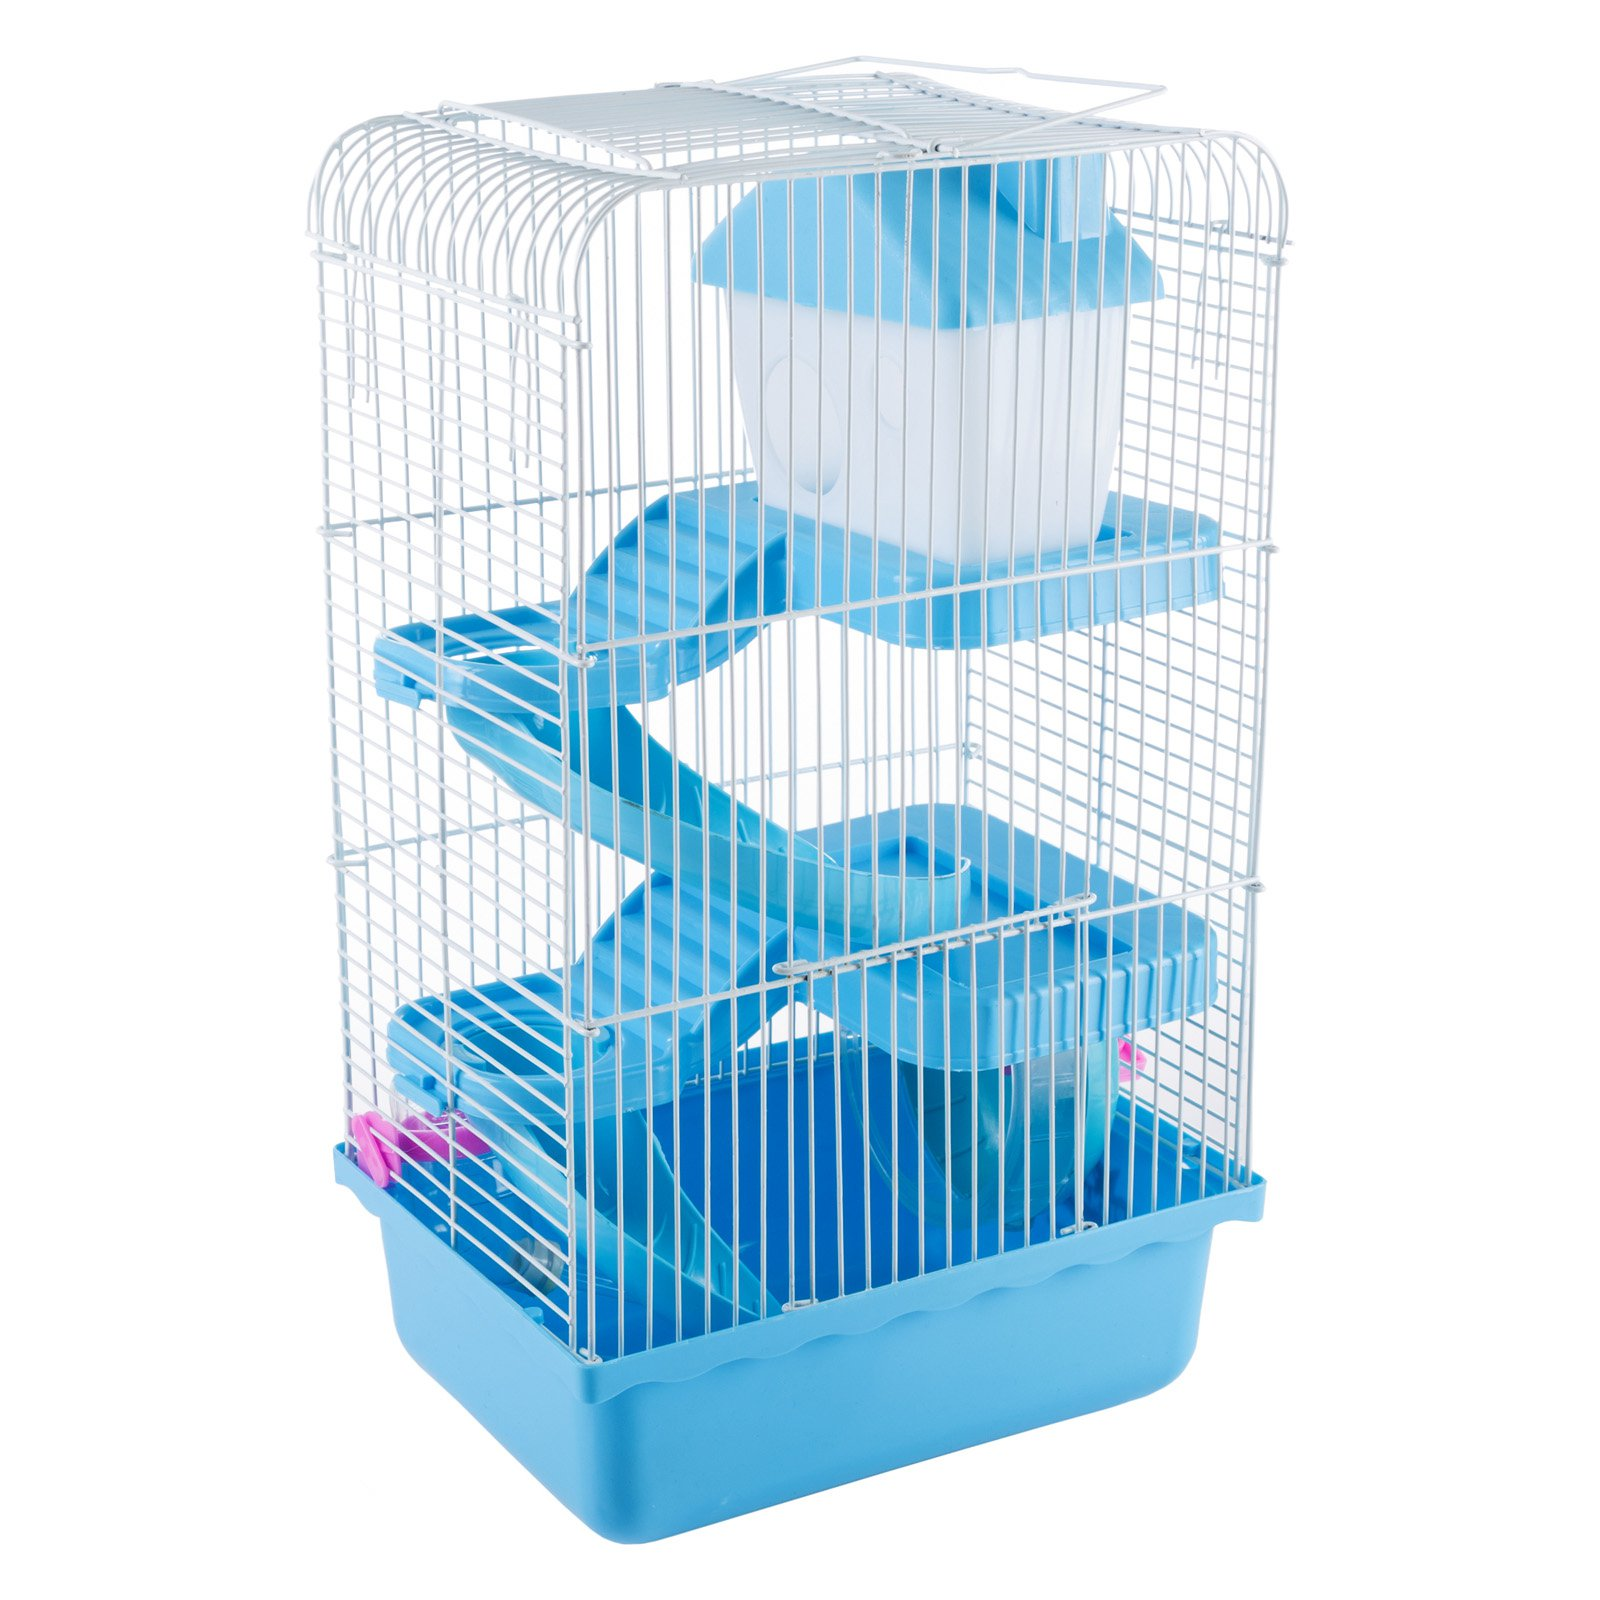 Petmaker Hamster Cage Habitat with Attachments and Accessories by Overstock